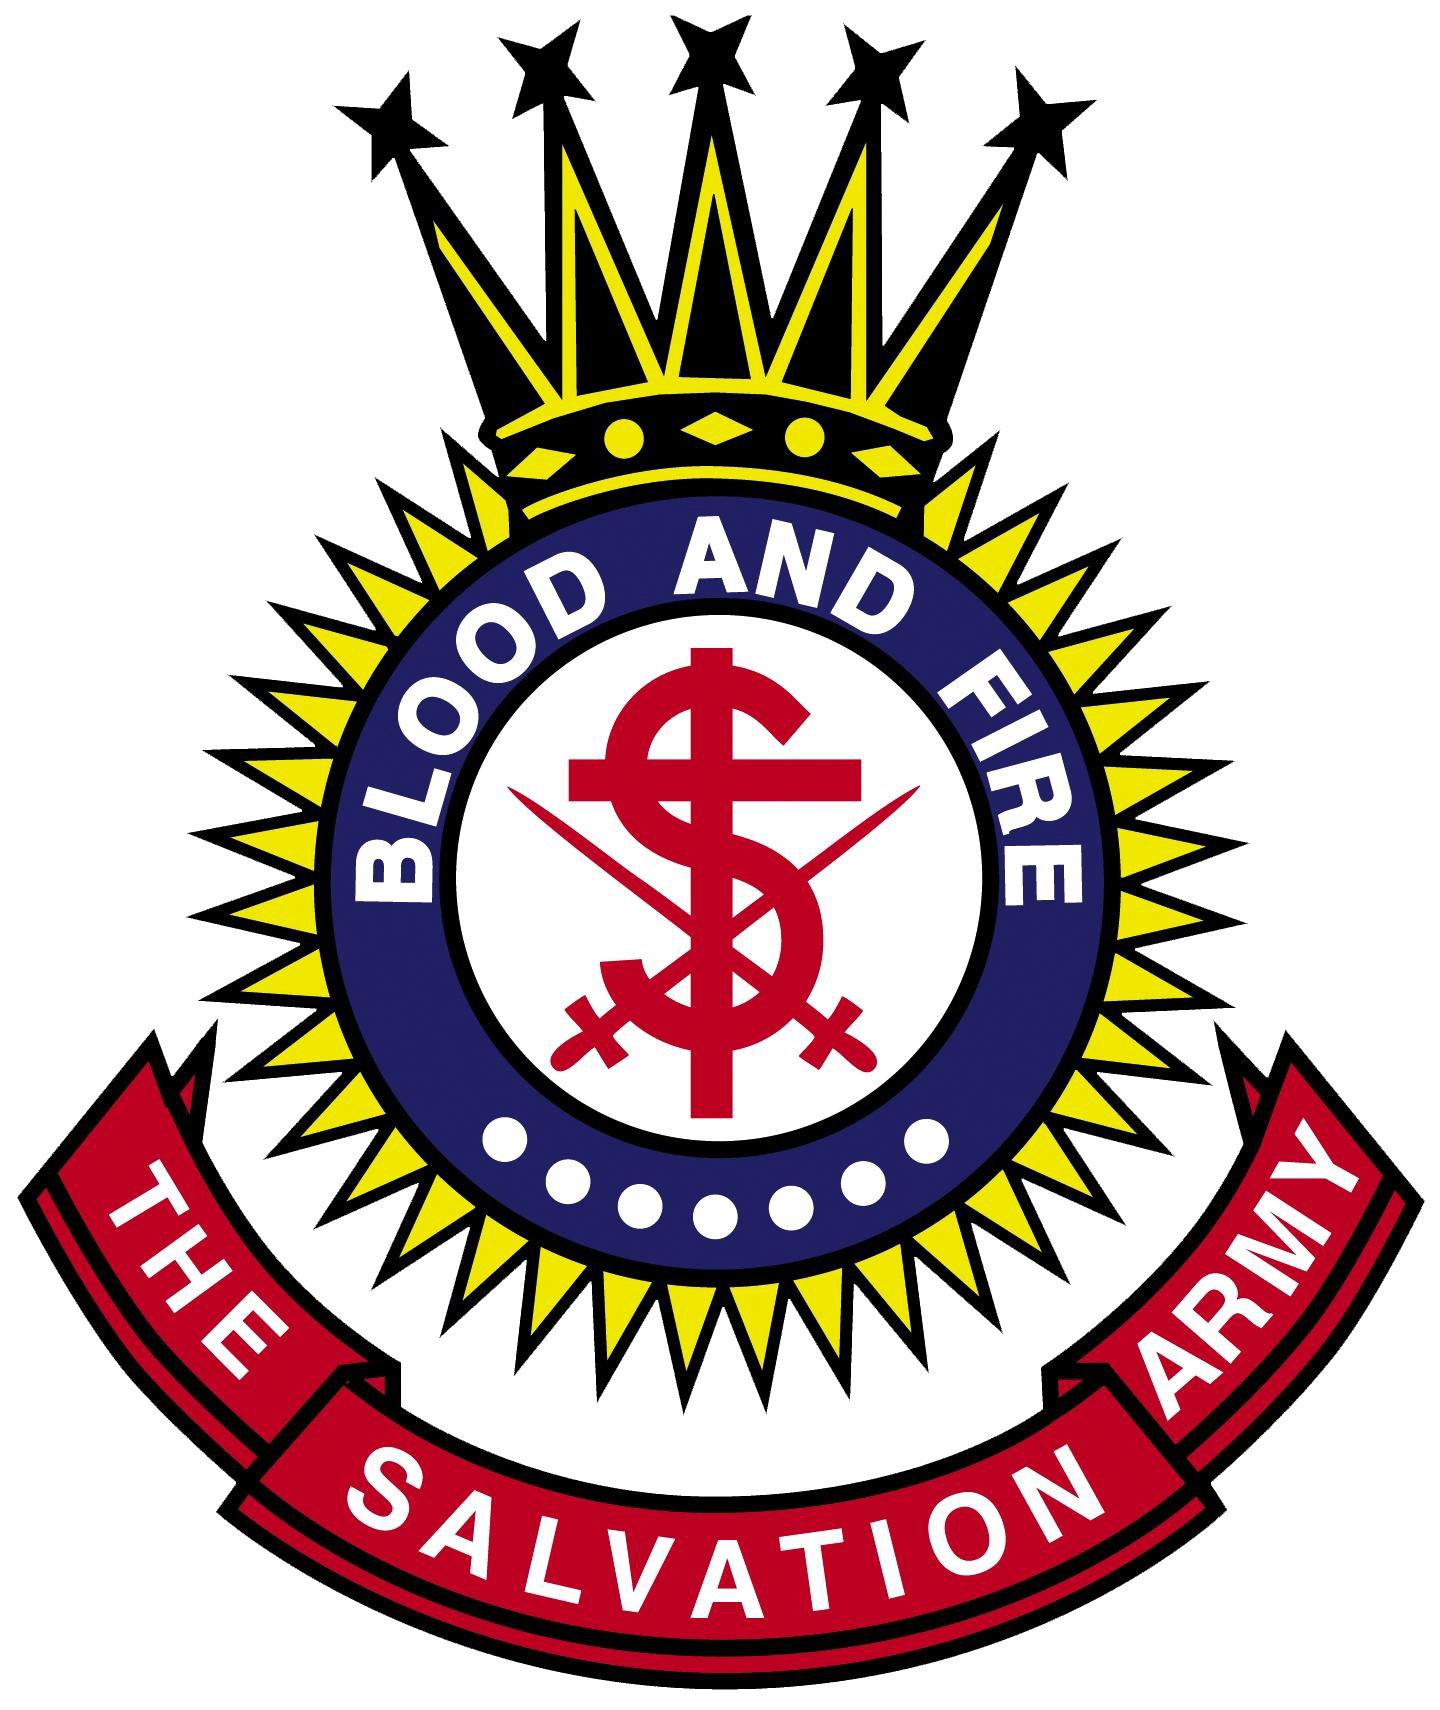 eastern pennsylvania and delaware the salvation army of